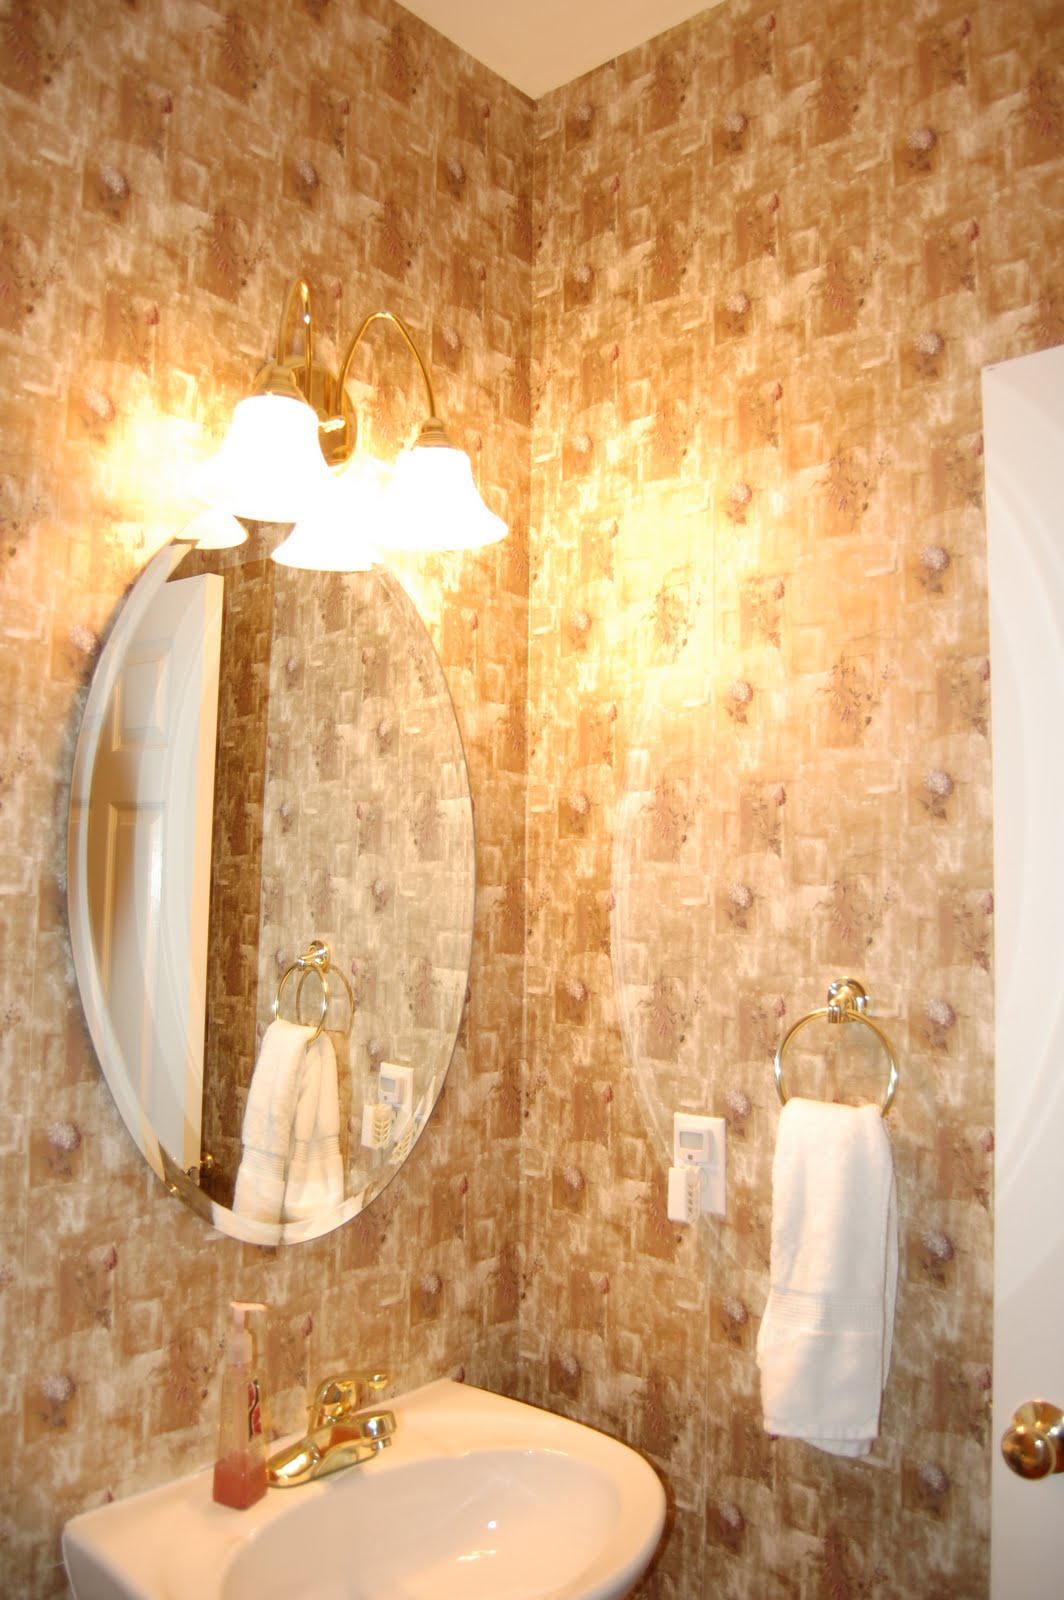 Free Download Removing Wallpaper With Fabric Softener Easy